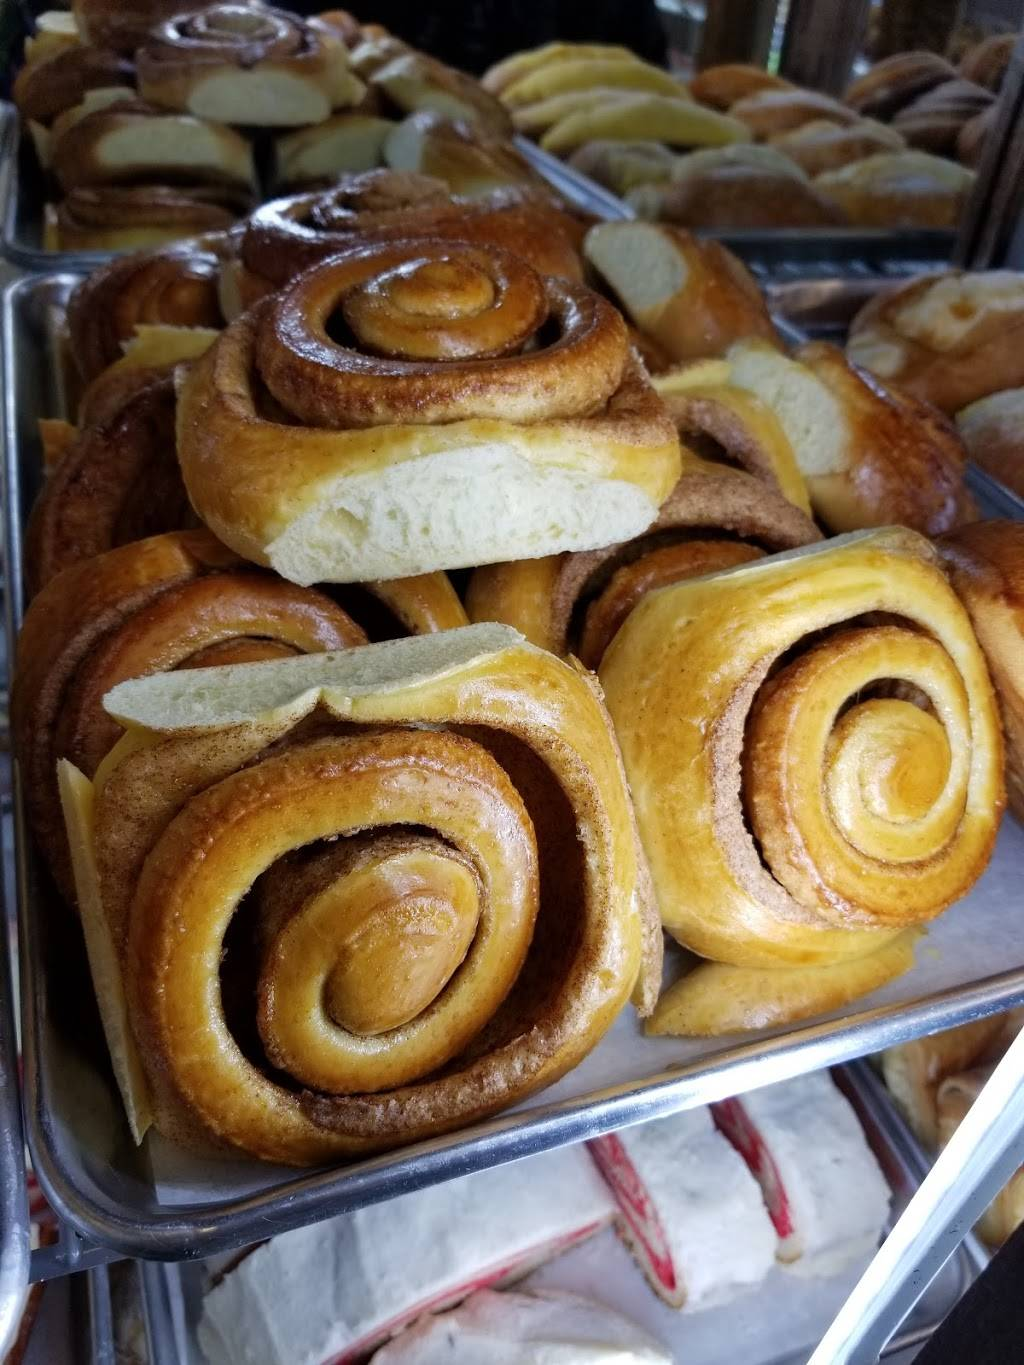 Monarca Panaderia y Pasteleria   bakery   4407 N Kimball Ave, Chicago, IL 60618, USA   8722085428 OR +1 872-208-5428